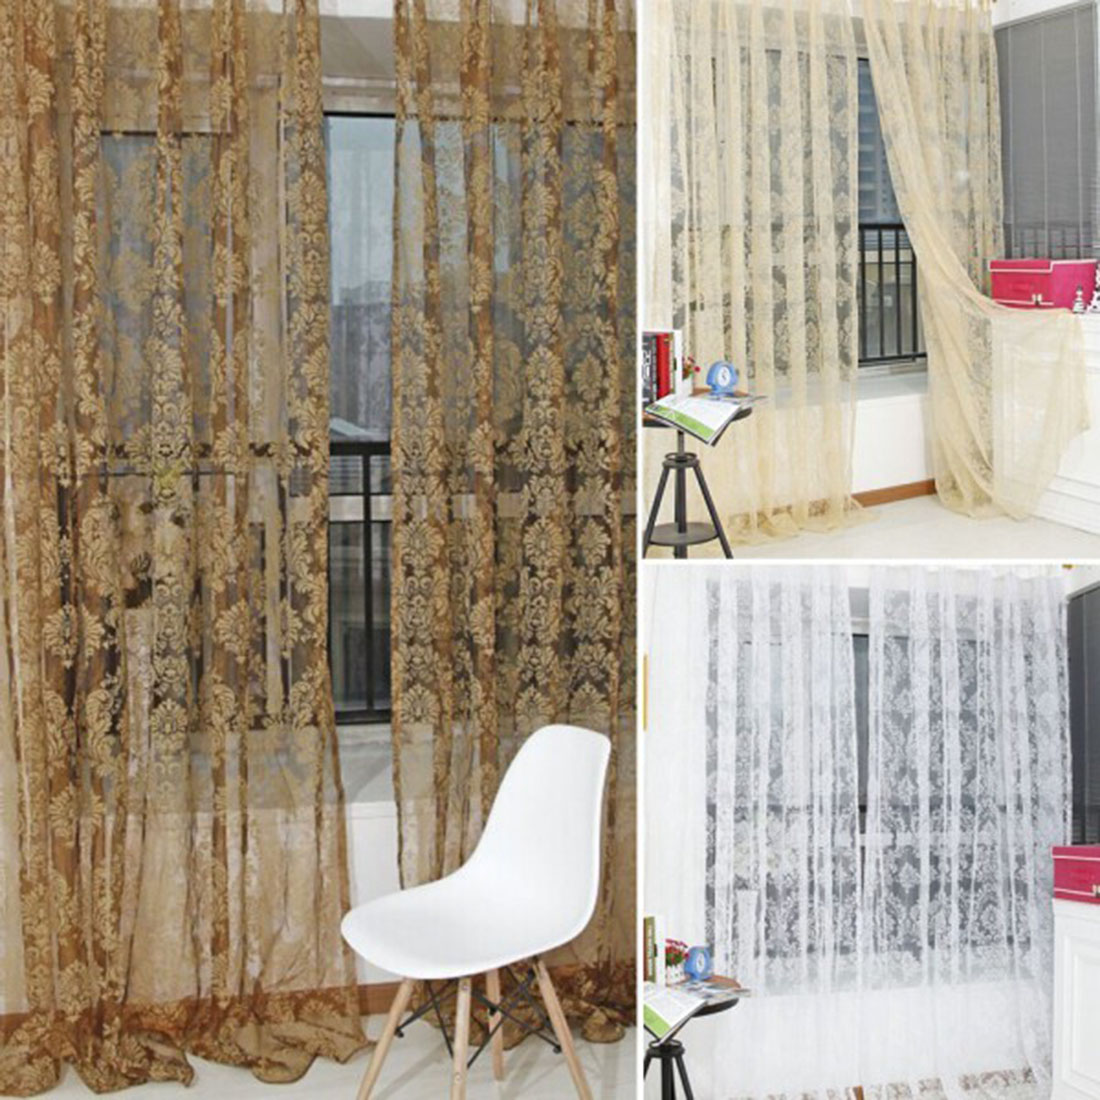 Bedroom Curtains Sale Us 3 82 28 Off Hot Sale Fashion Finished Window Screening Tulle Modern Sheer Curtains For Living Room The Bedroom Fabric For Curtain In Stock In